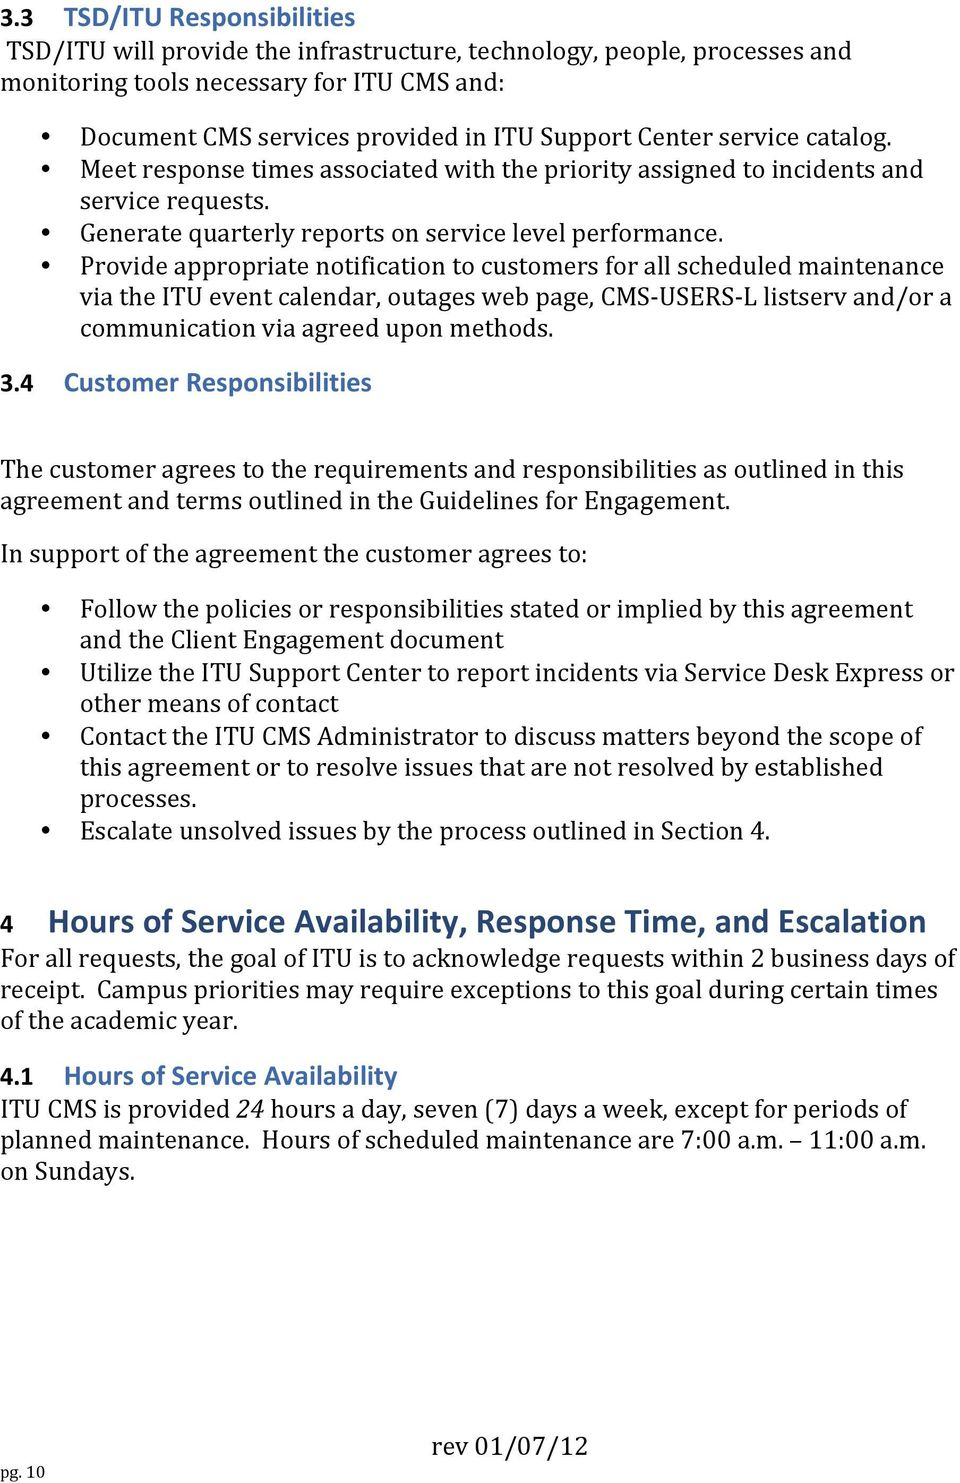 Provide appropriate notification to customers for all scheduled maintenance via the ITU event calendar, outages web page, CMS- USERS- L listserv and/or a communication via agreed upon methods. 3.